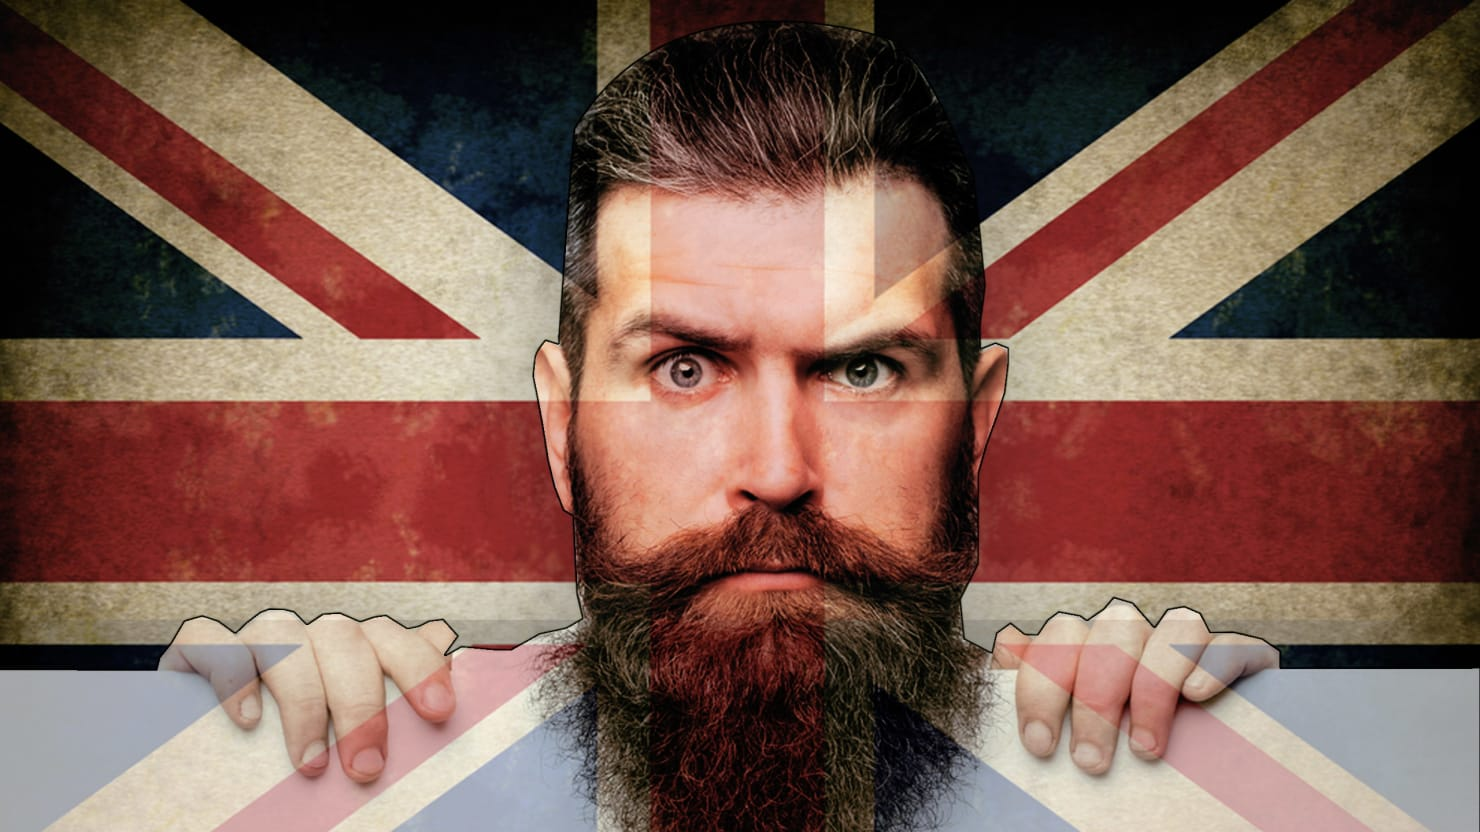 This British Company Just Banned Beards for Health and Safety Reasons